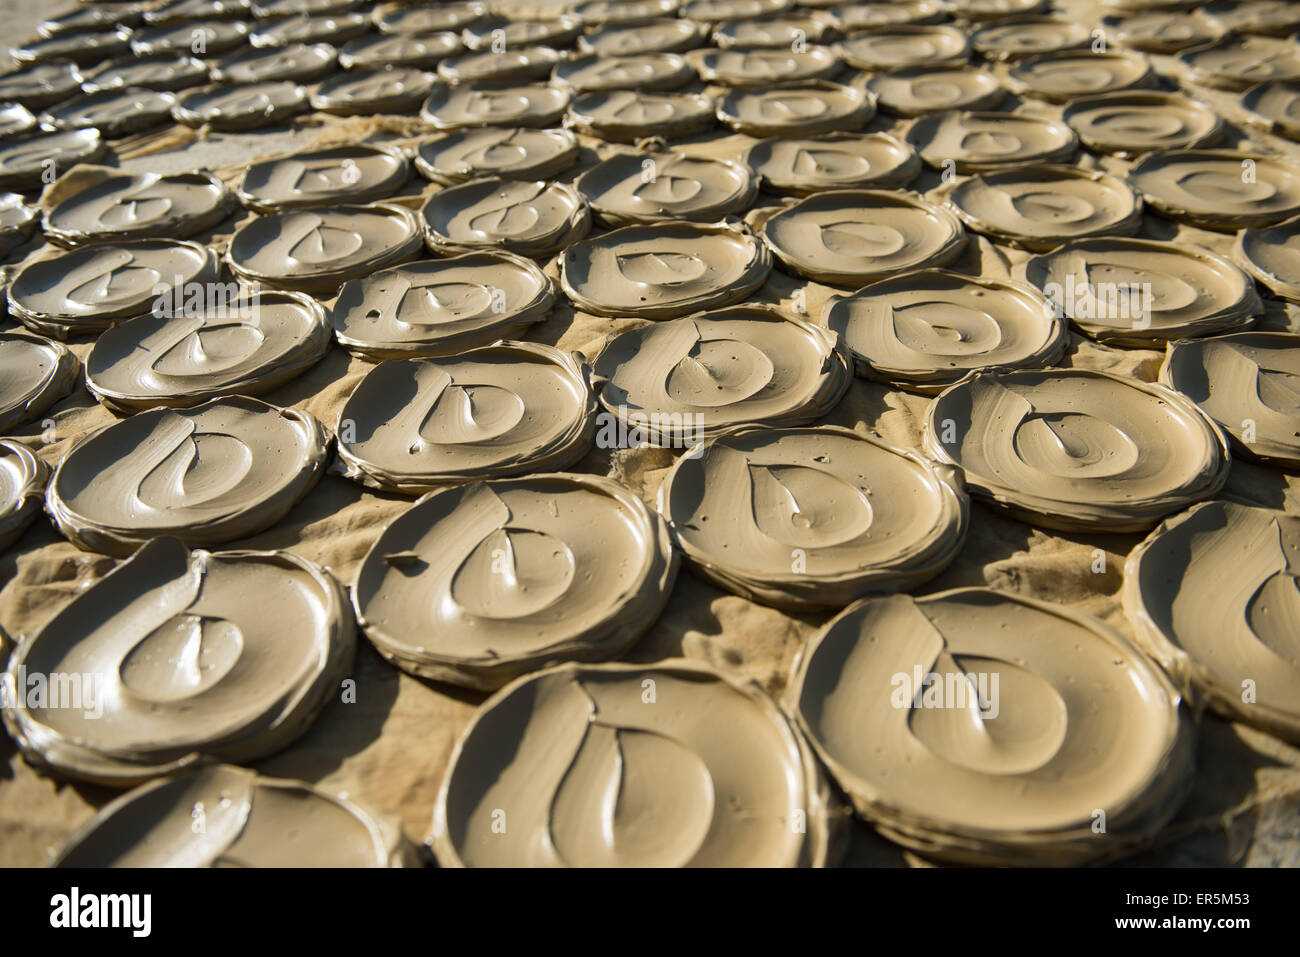 (150528) -- PORT AU PRINCE, May 28, 2015 (Xinhua) -- Mud cookies are placed on the ground in the city of Port au - Stock Image